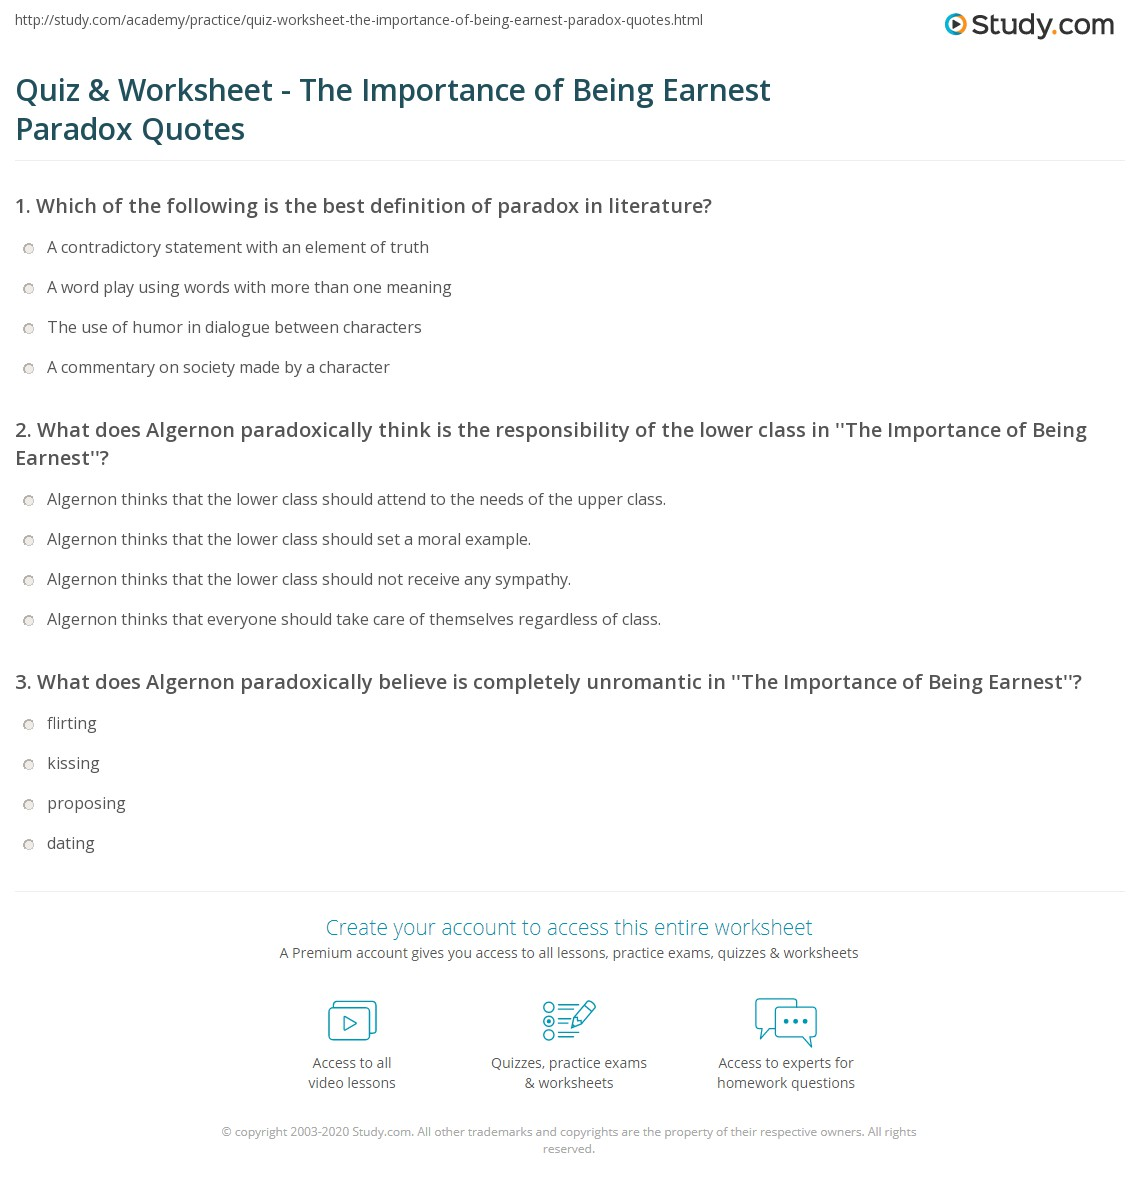 Quiz Worksheet The Importance Of Being Earnest Paradox Quotes